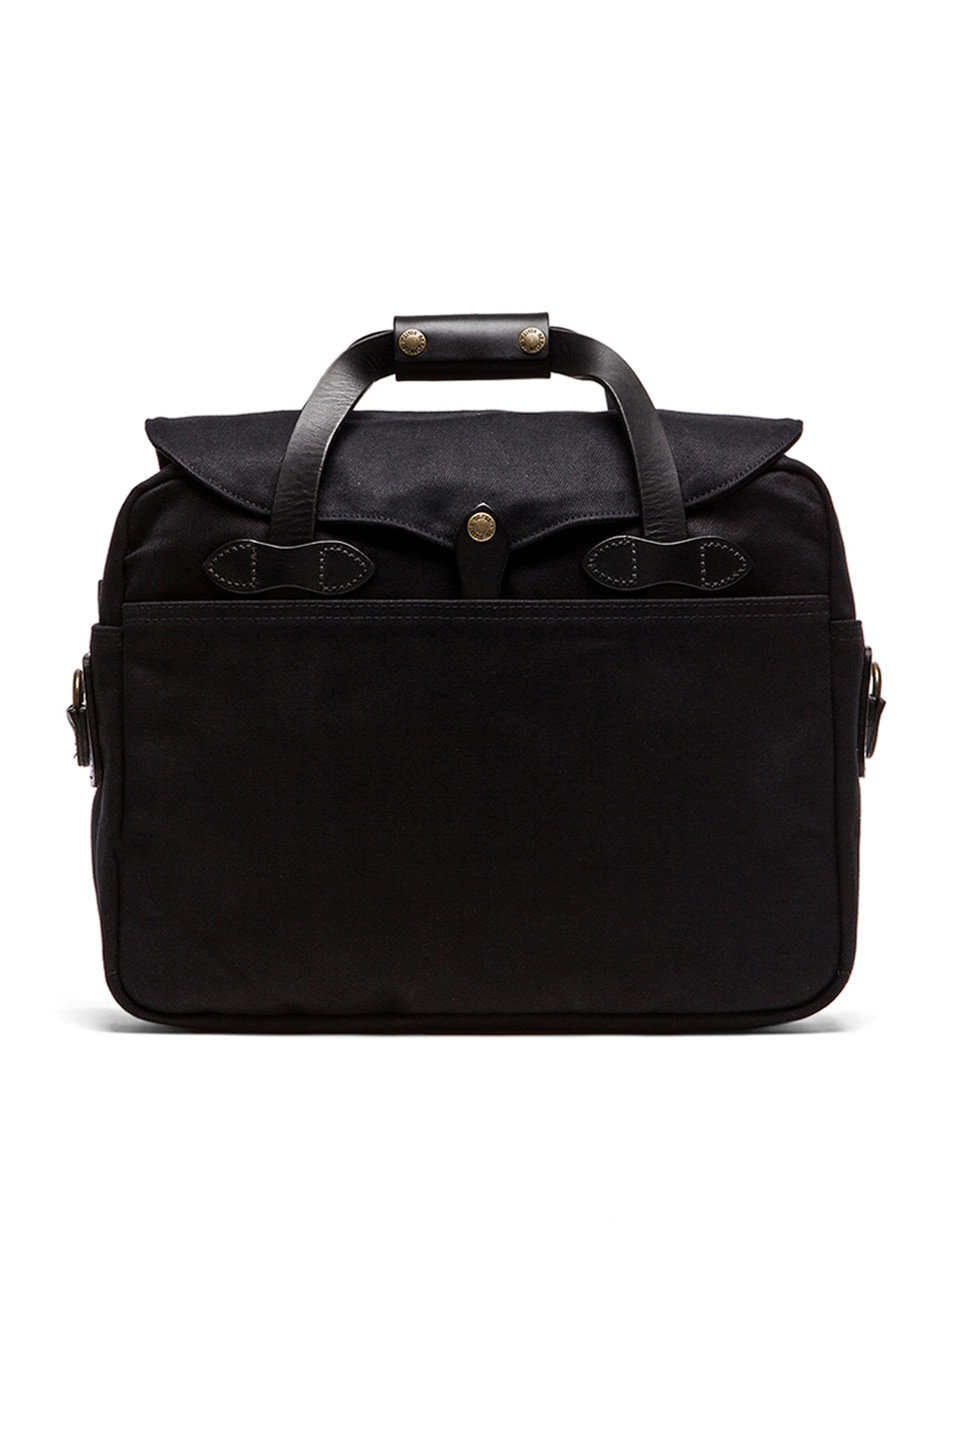 Filson Briefcase Computer Bag in Black